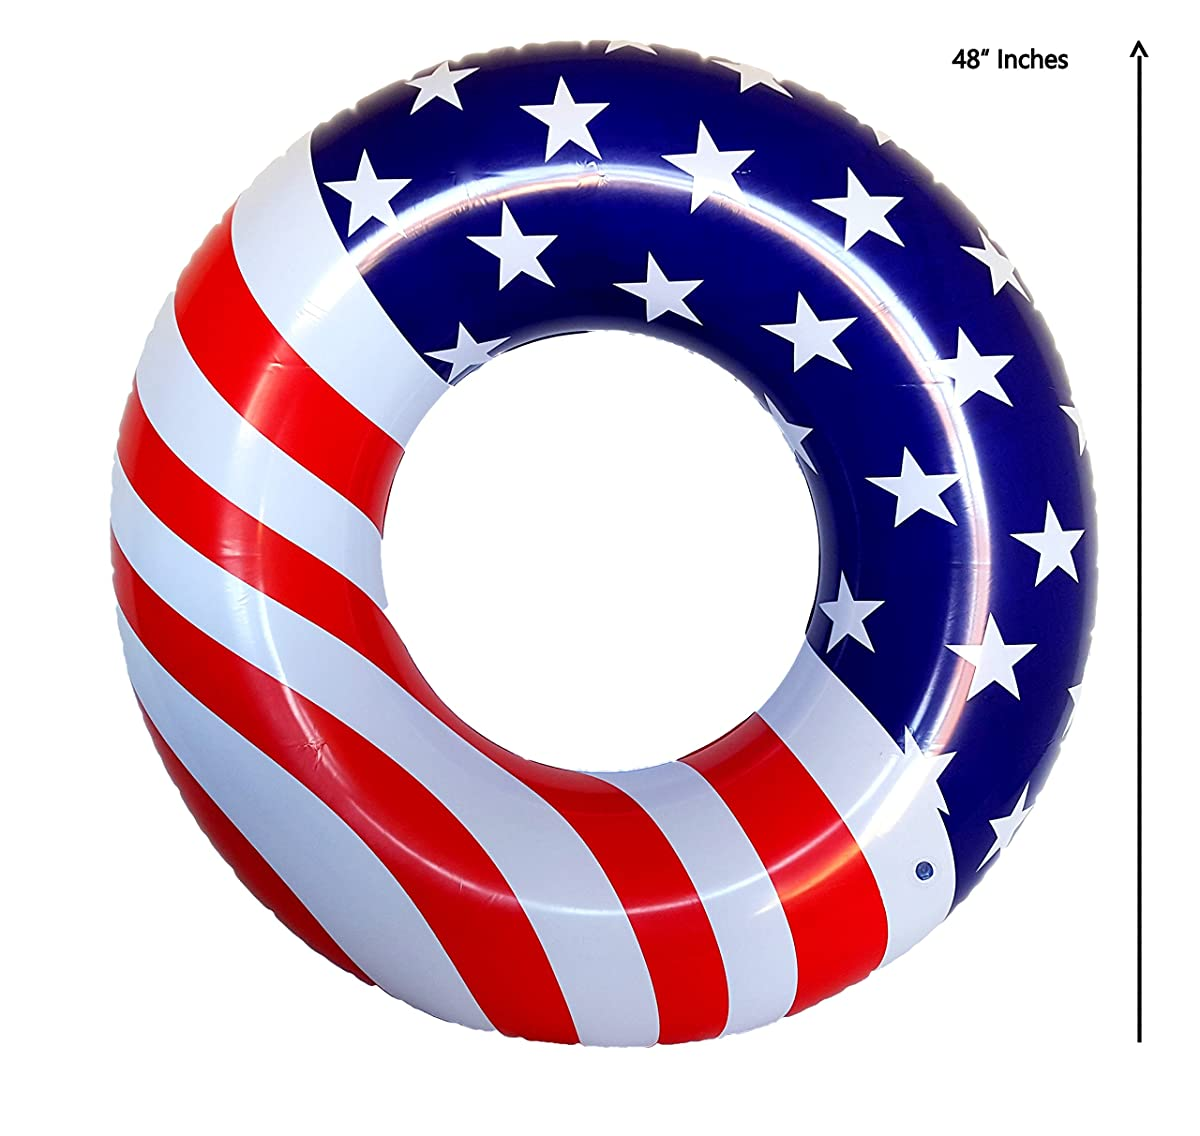 Playscene Giant American Flag Pool Float